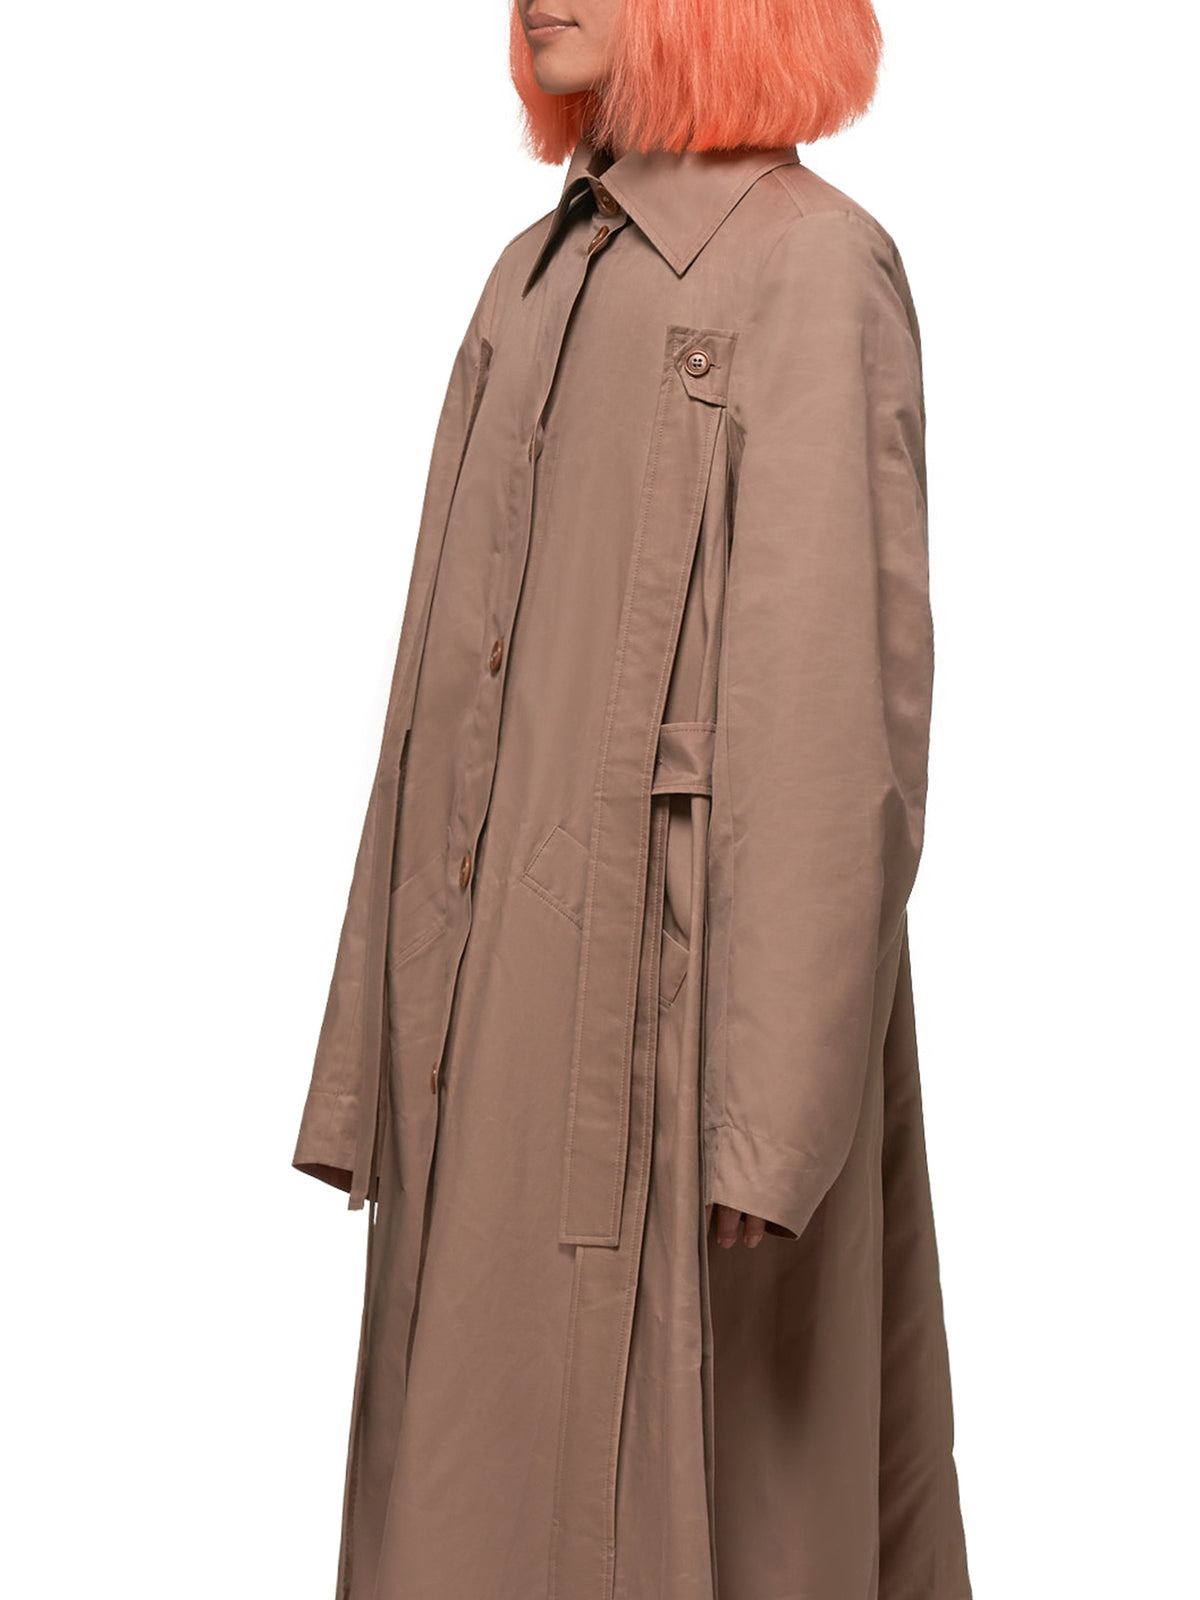 Onion Trench Coat (F606-ONION-TRENCH-SAND)